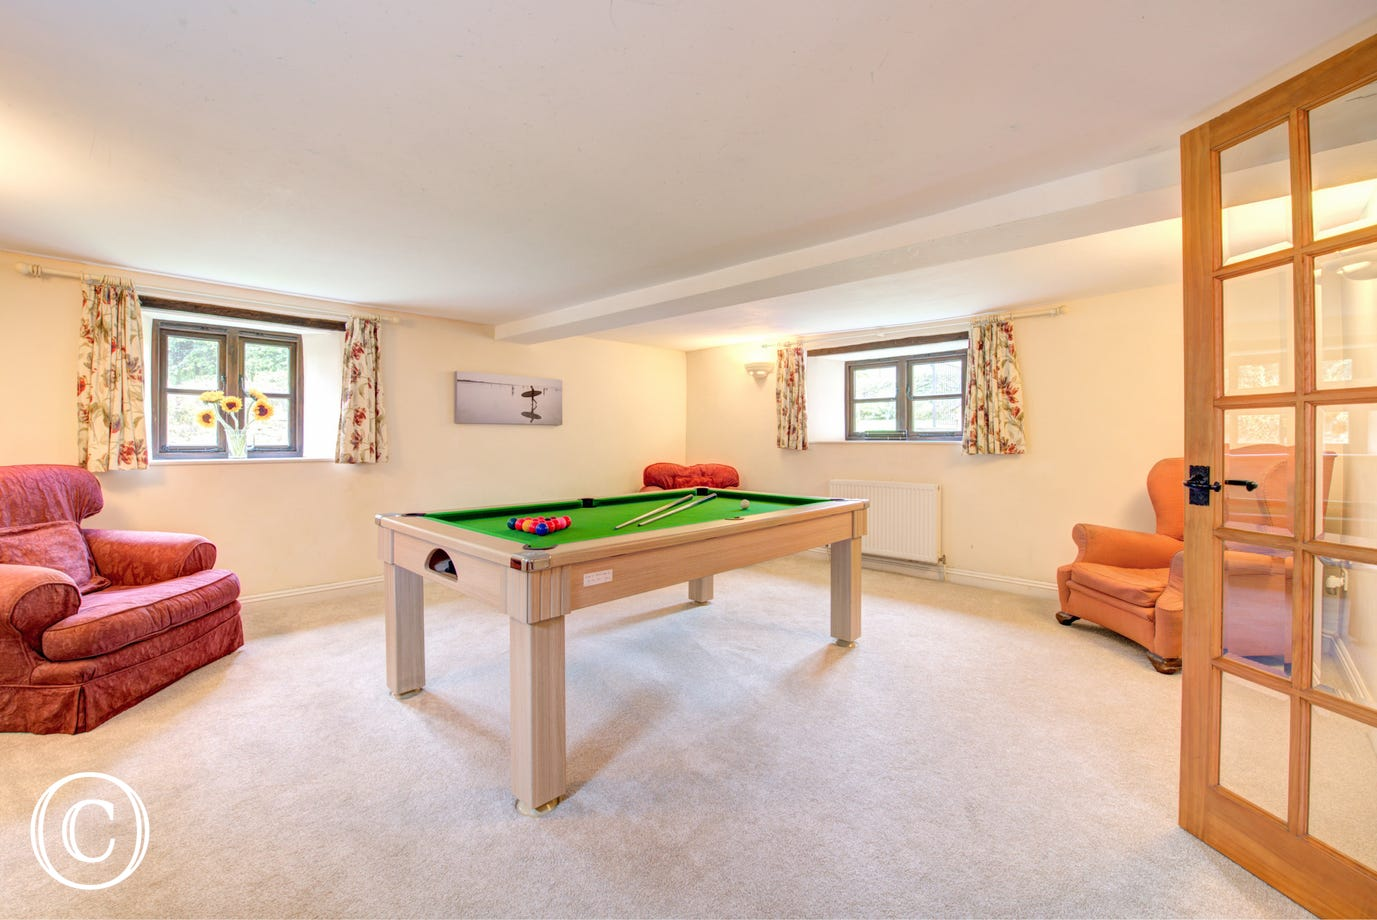 The fantastic Pool room!